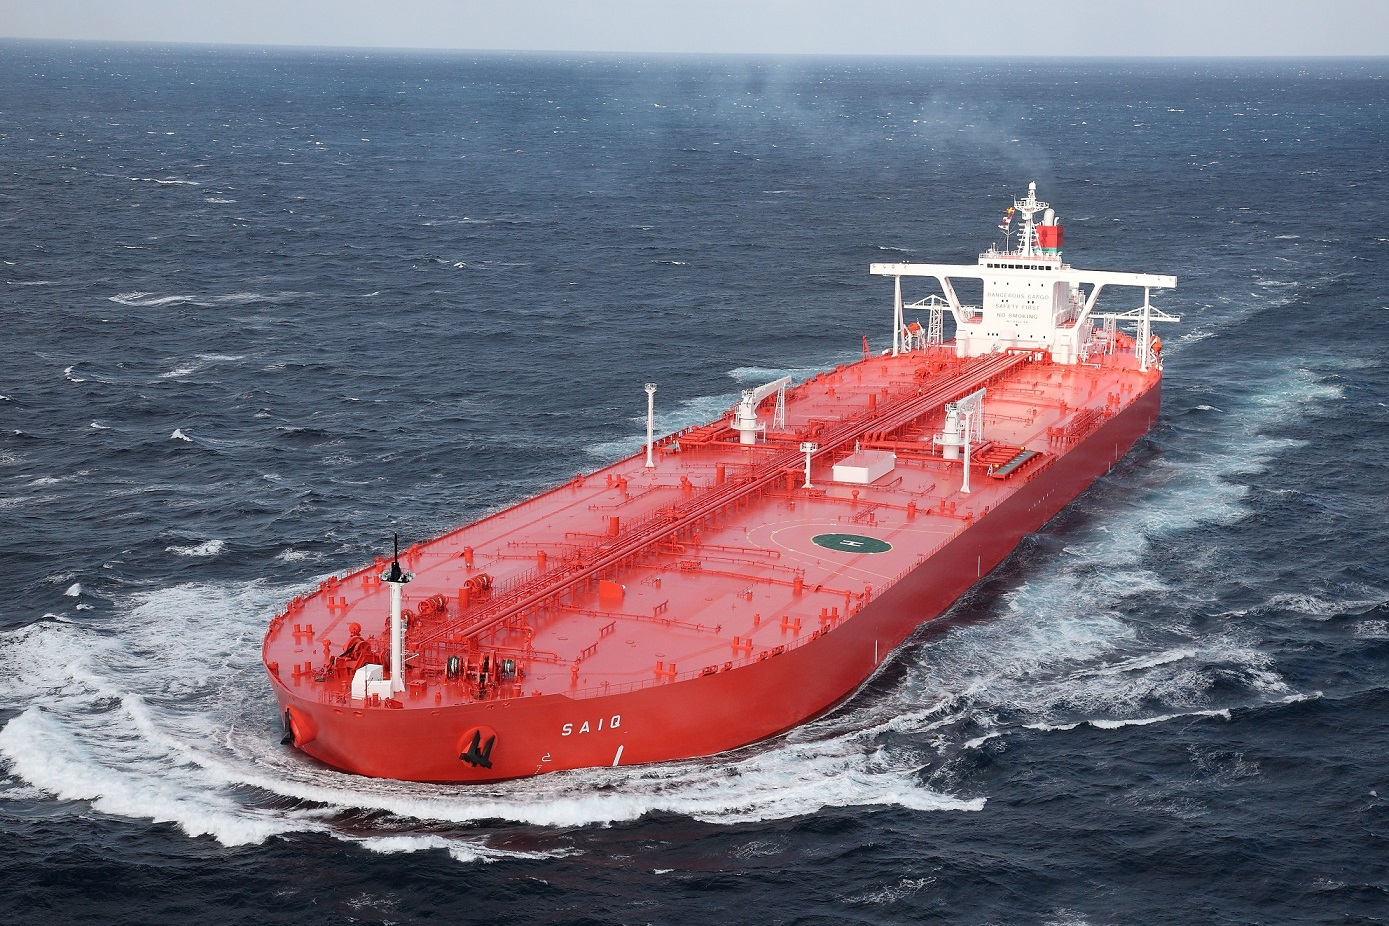 Oman Shipping Company (OSC) launches global VLCC chartering business